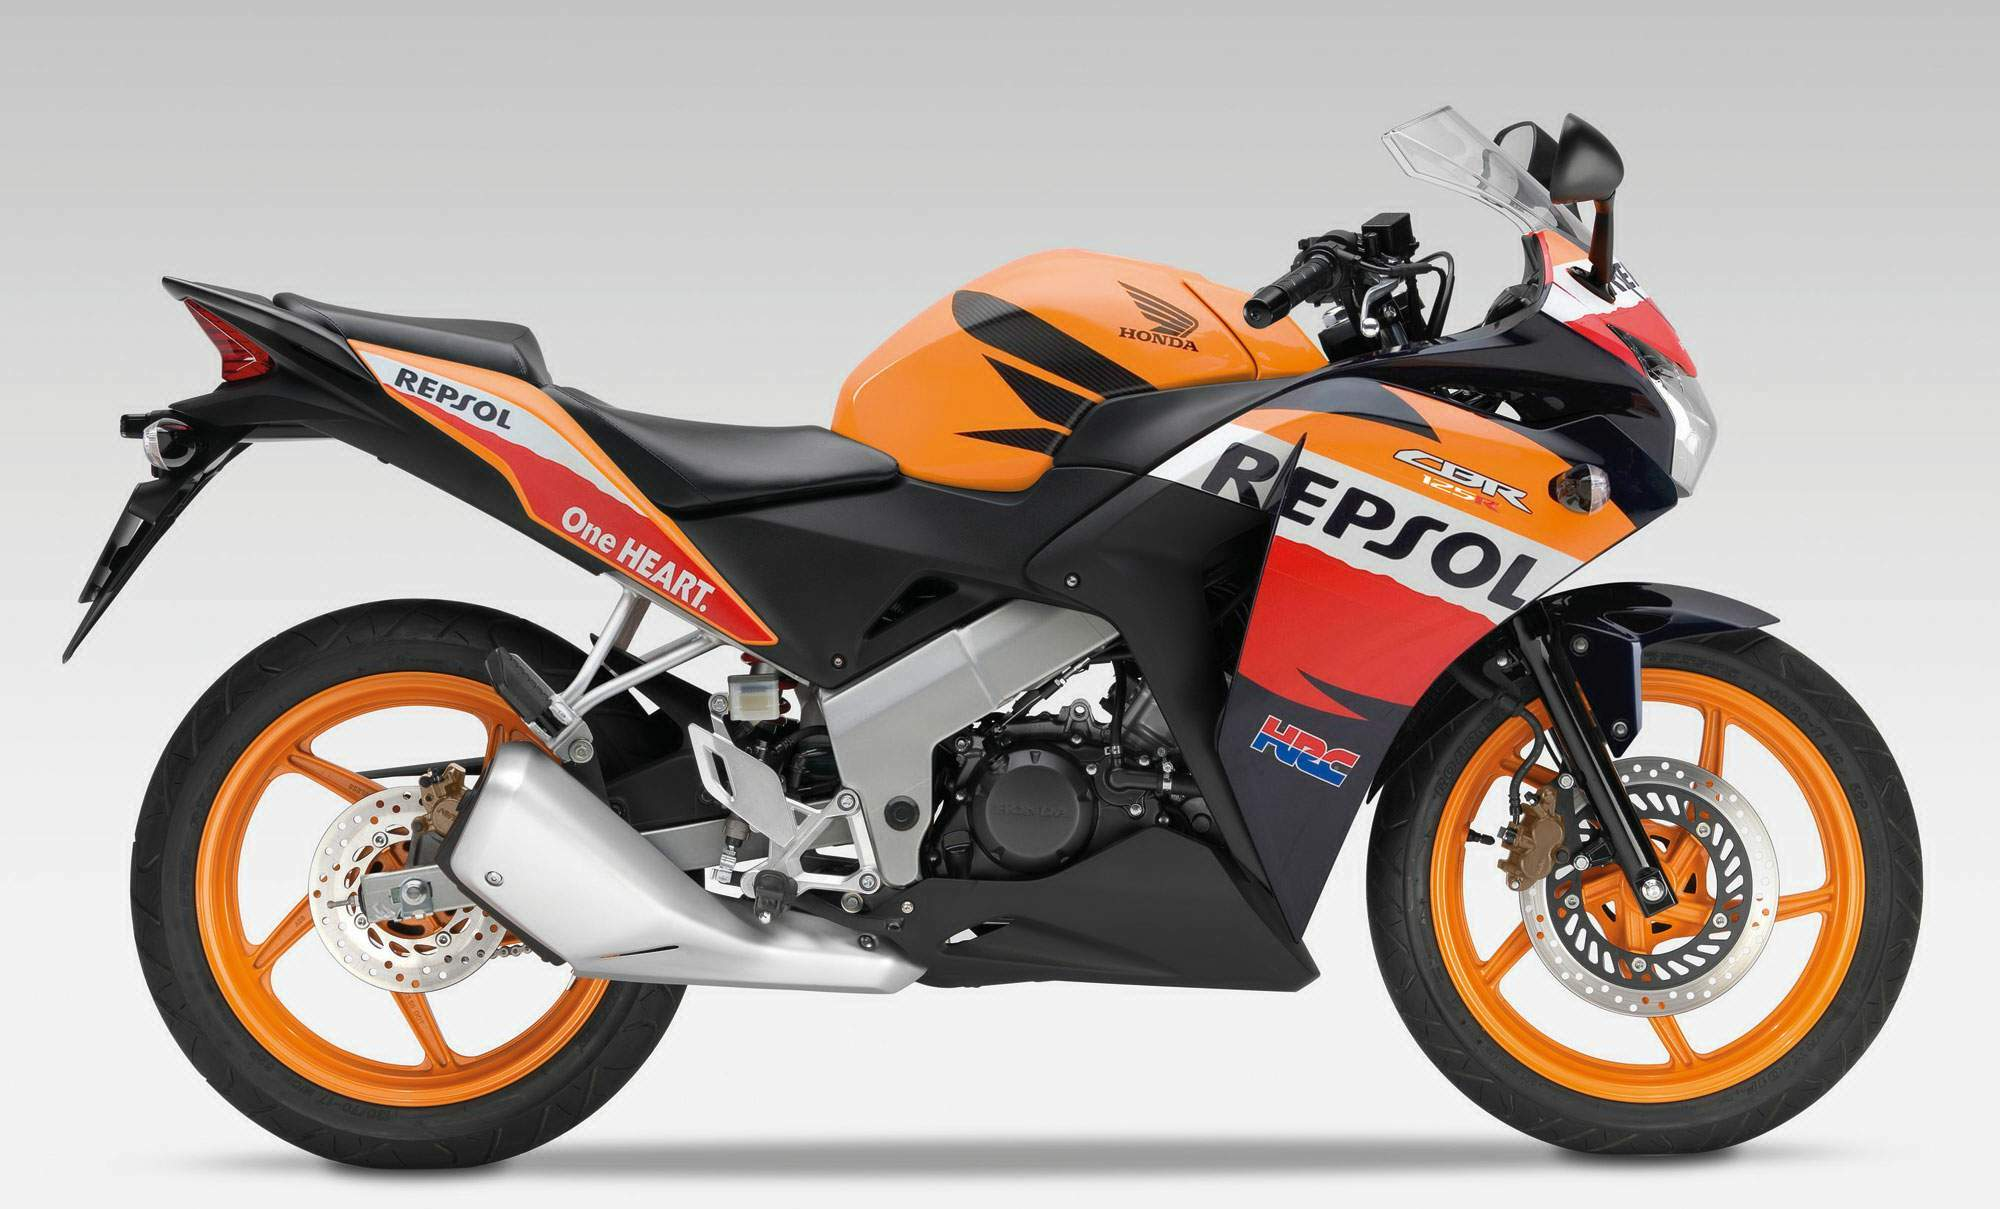 honda cbr 125r repsol specs 2012 2013 2014 2015 2016 2017 2018 autoevolution. Black Bedroom Furniture Sets. Home Design Ideas